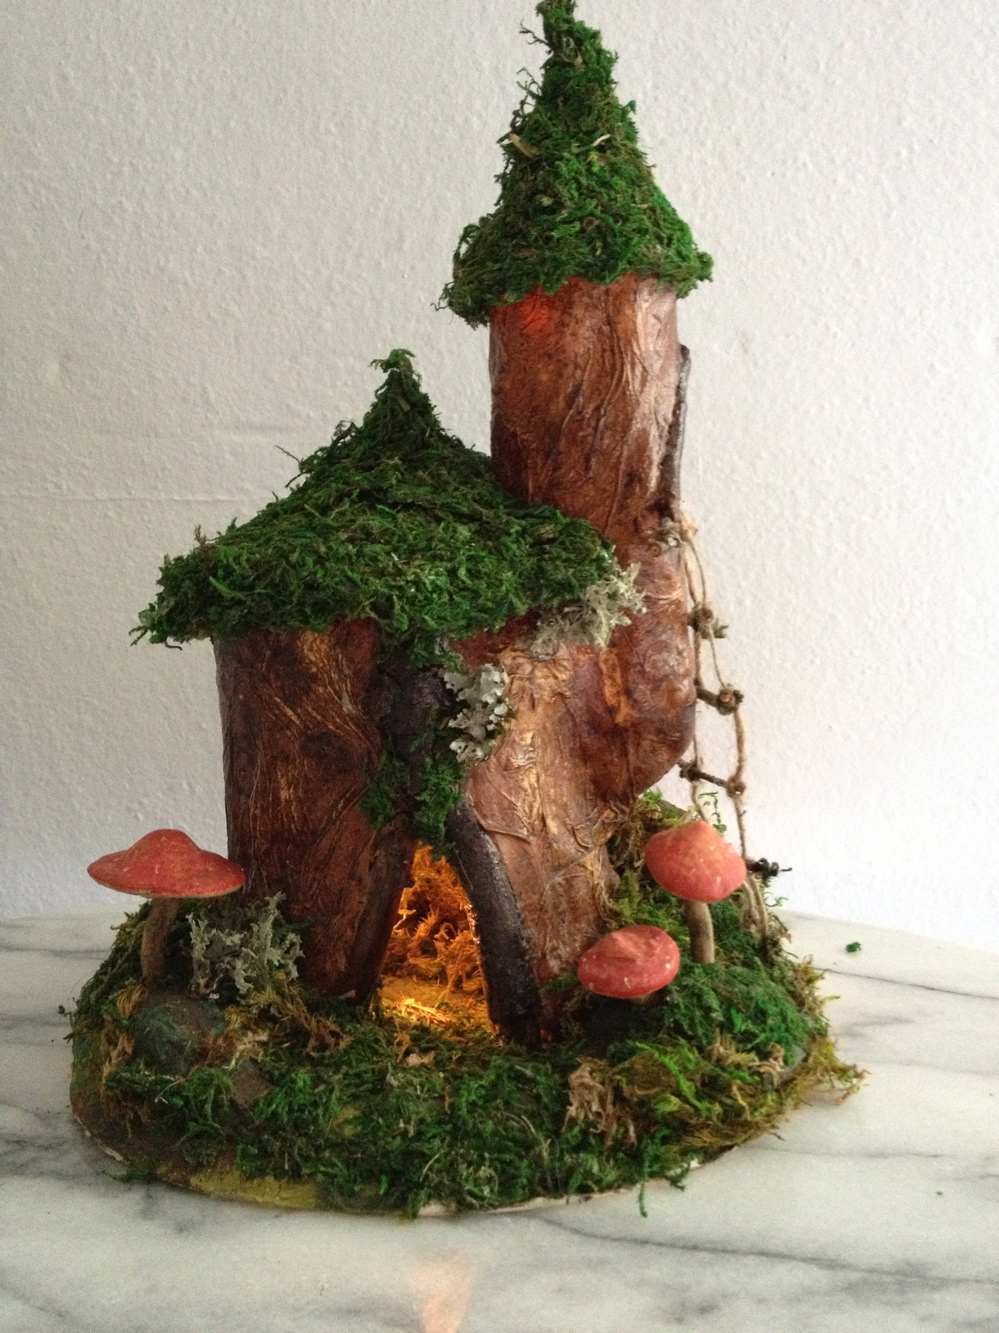 fairy gnome house DIY handmade wood and mushrooms rope ladder